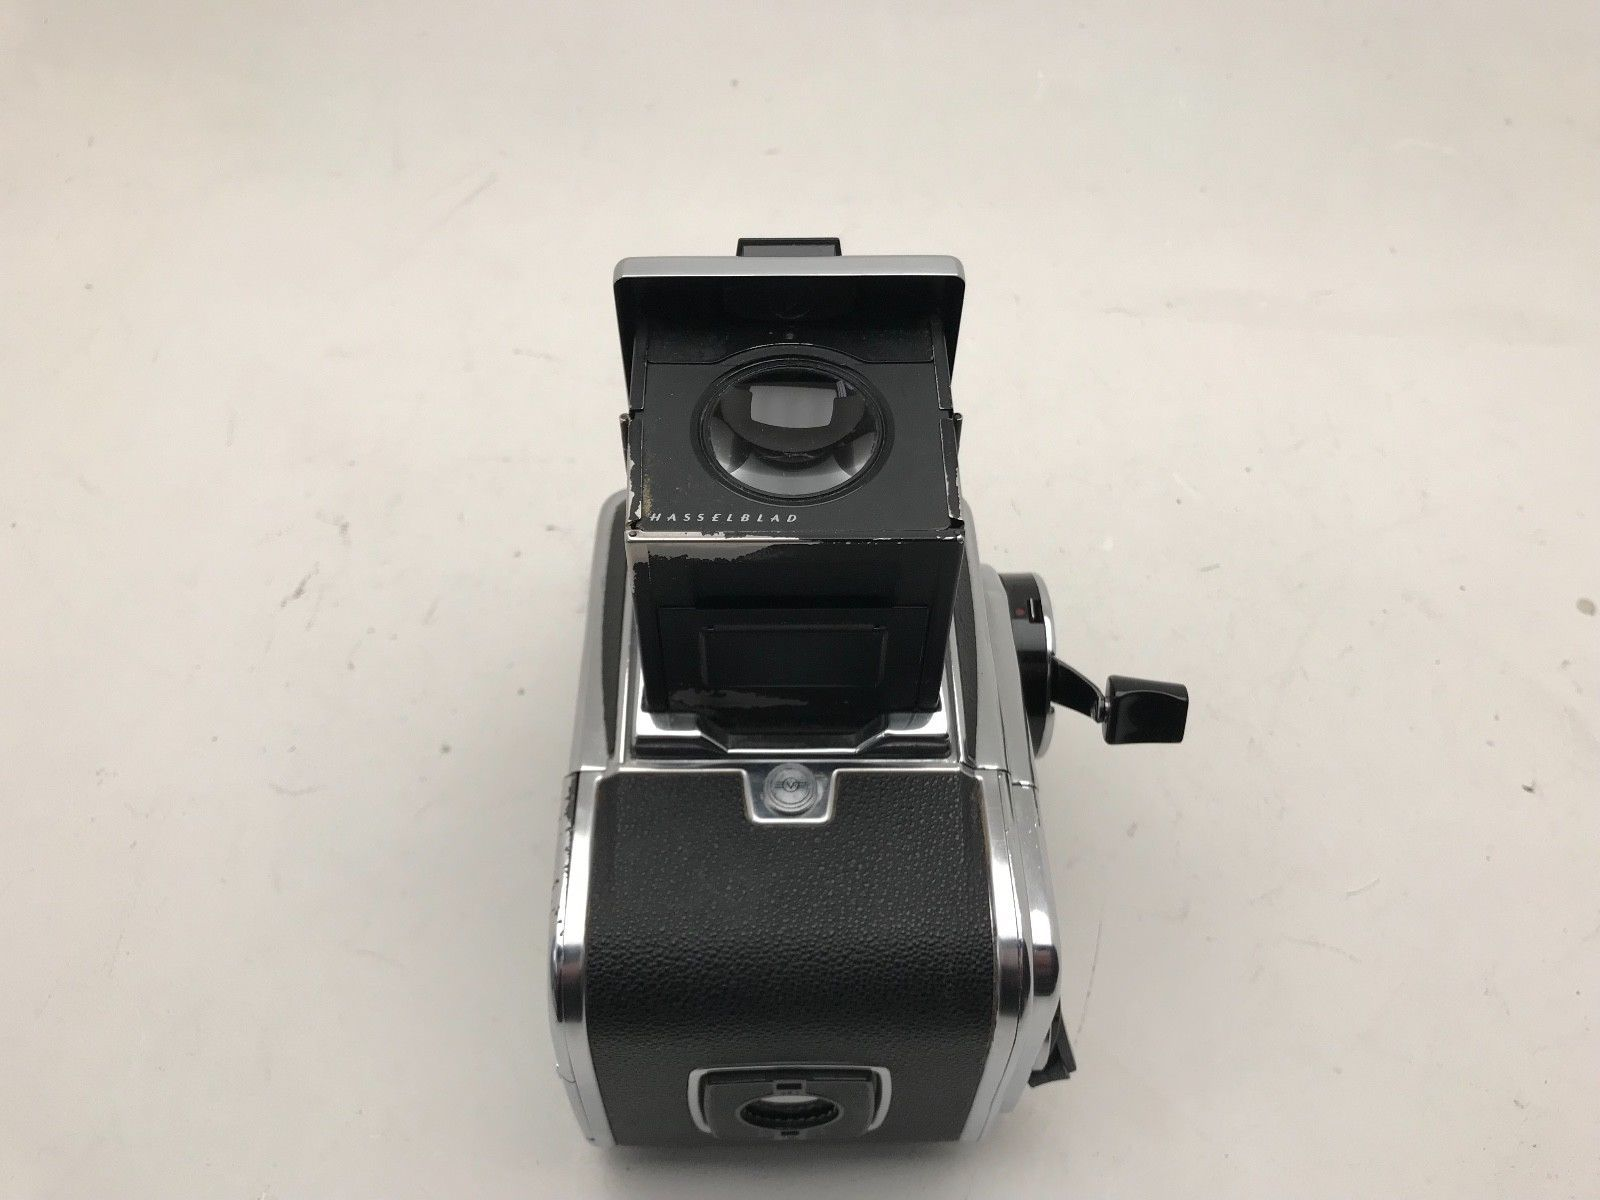 Hasselblad 500cm complete with 100mm planar f3 5 lens and A12 chrome